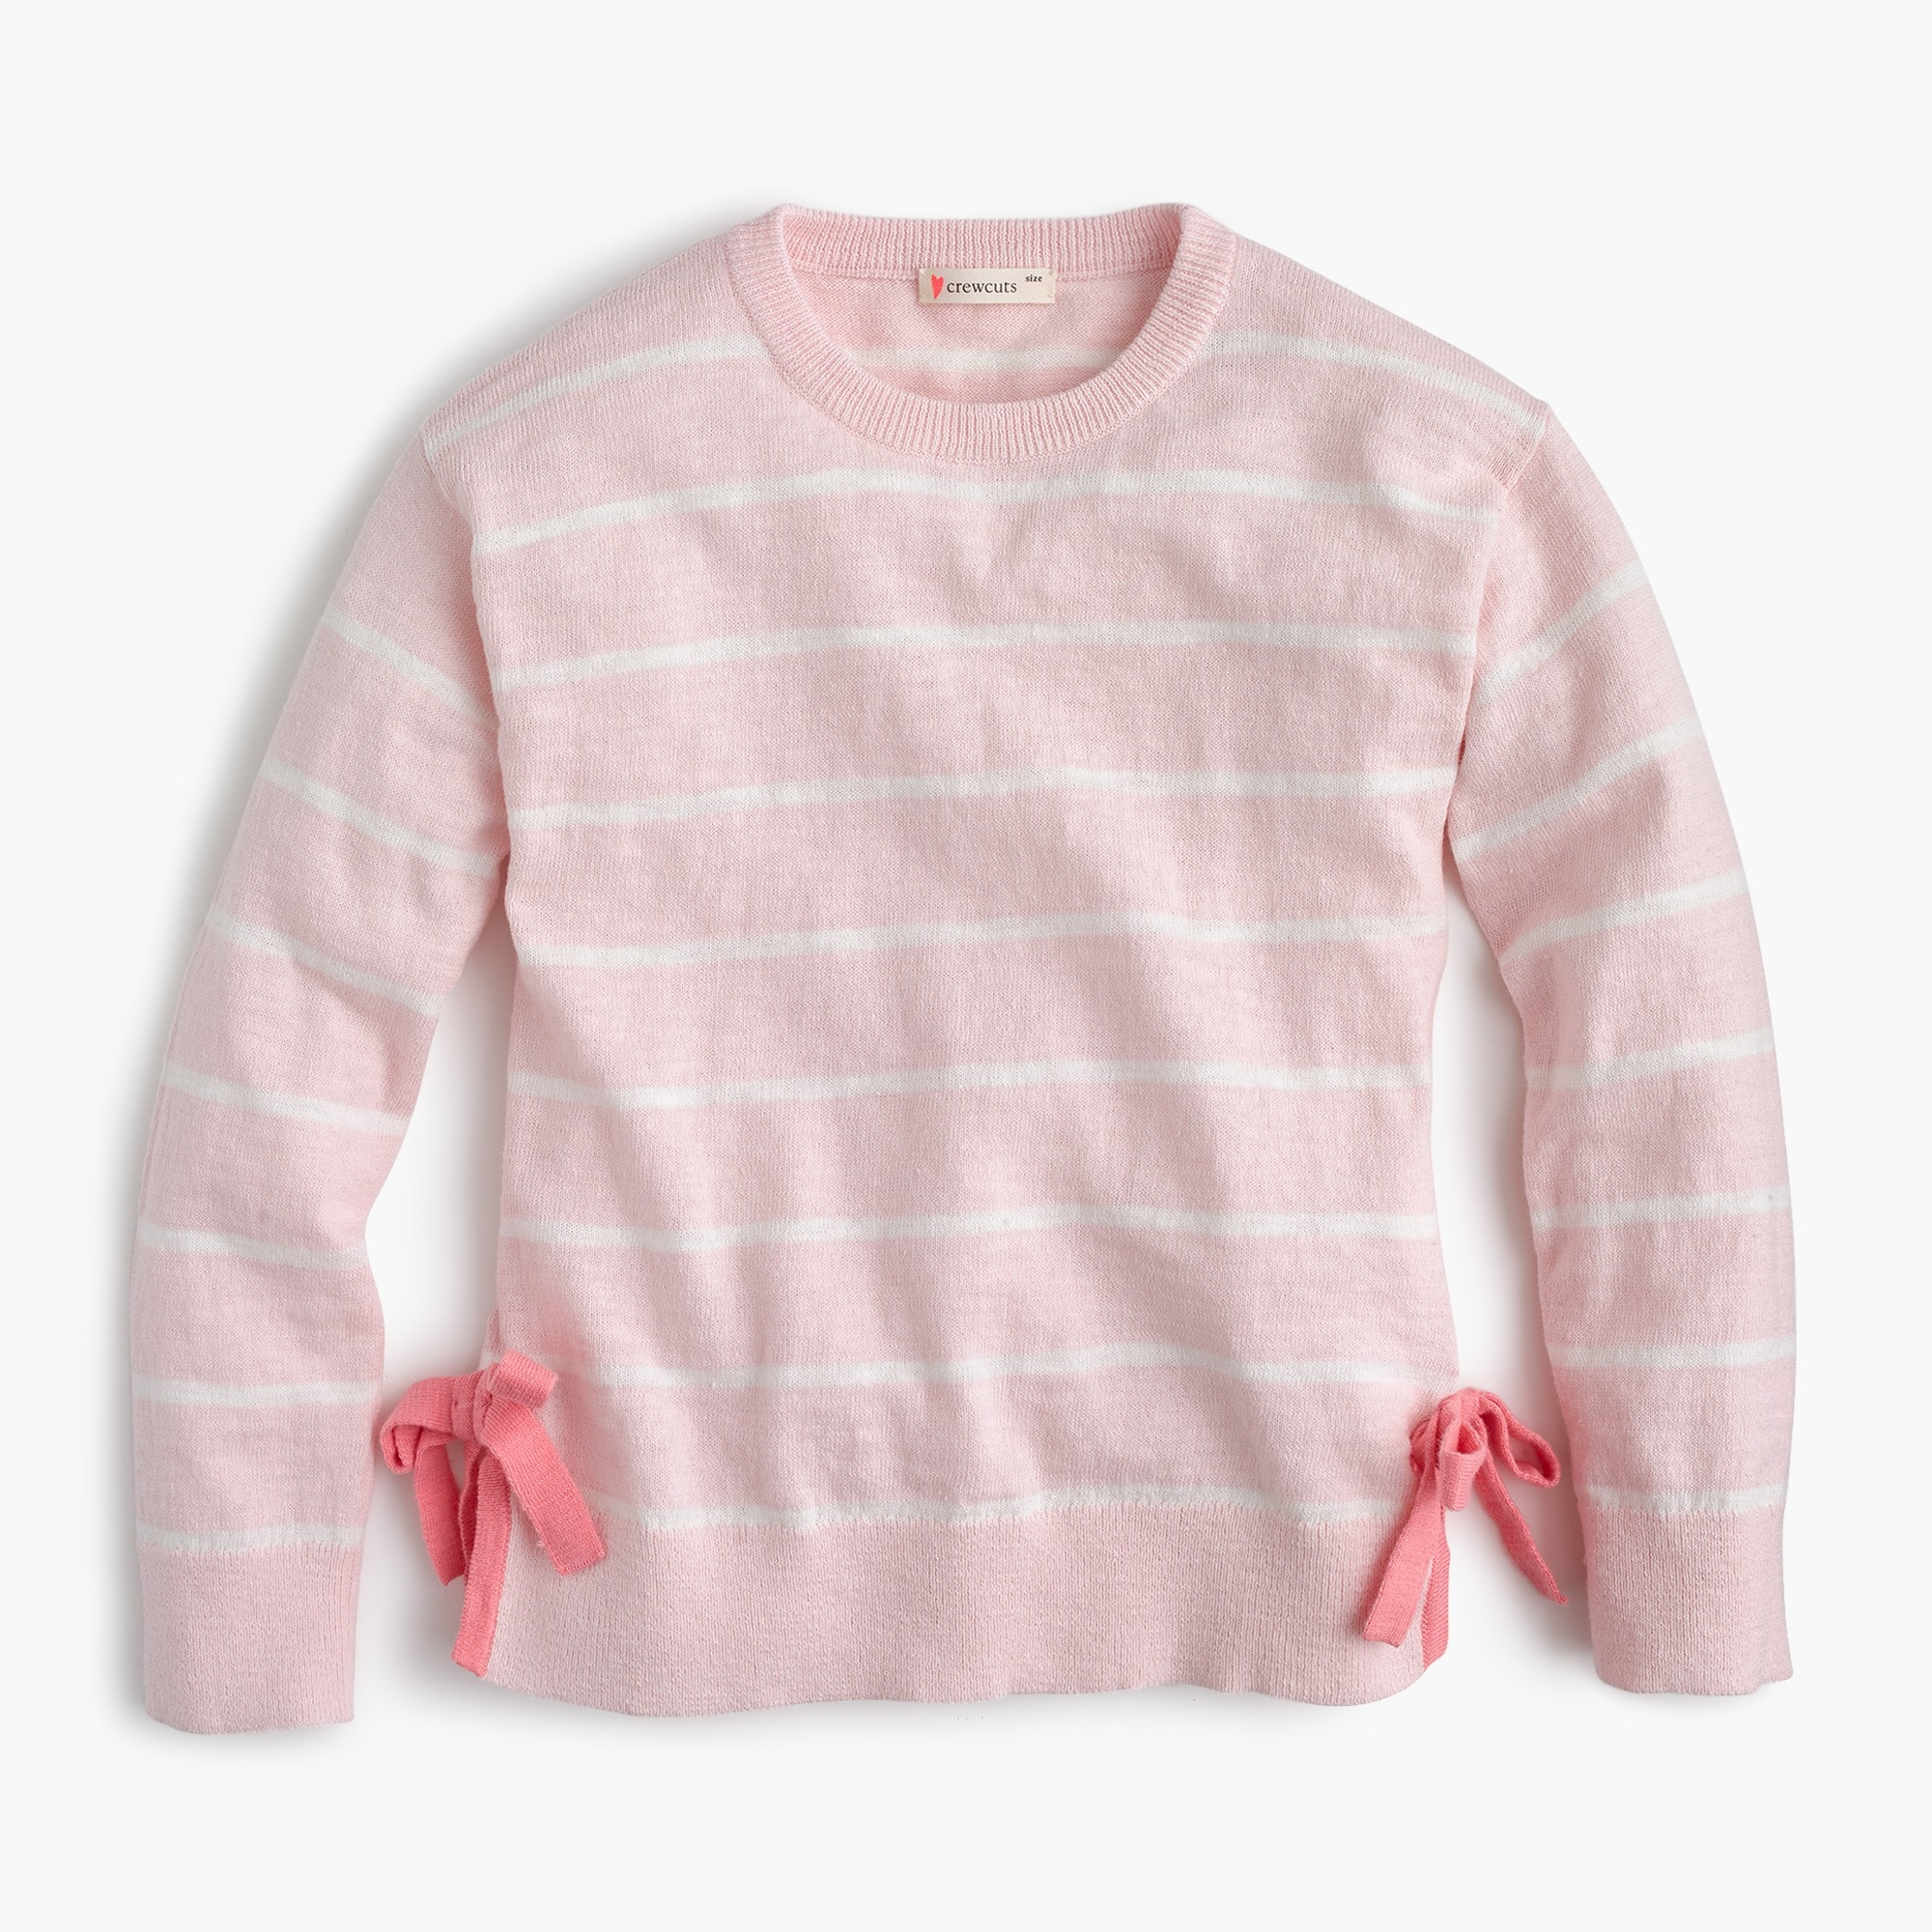 Girls' striped popover sweater with bows girl new arrivals c